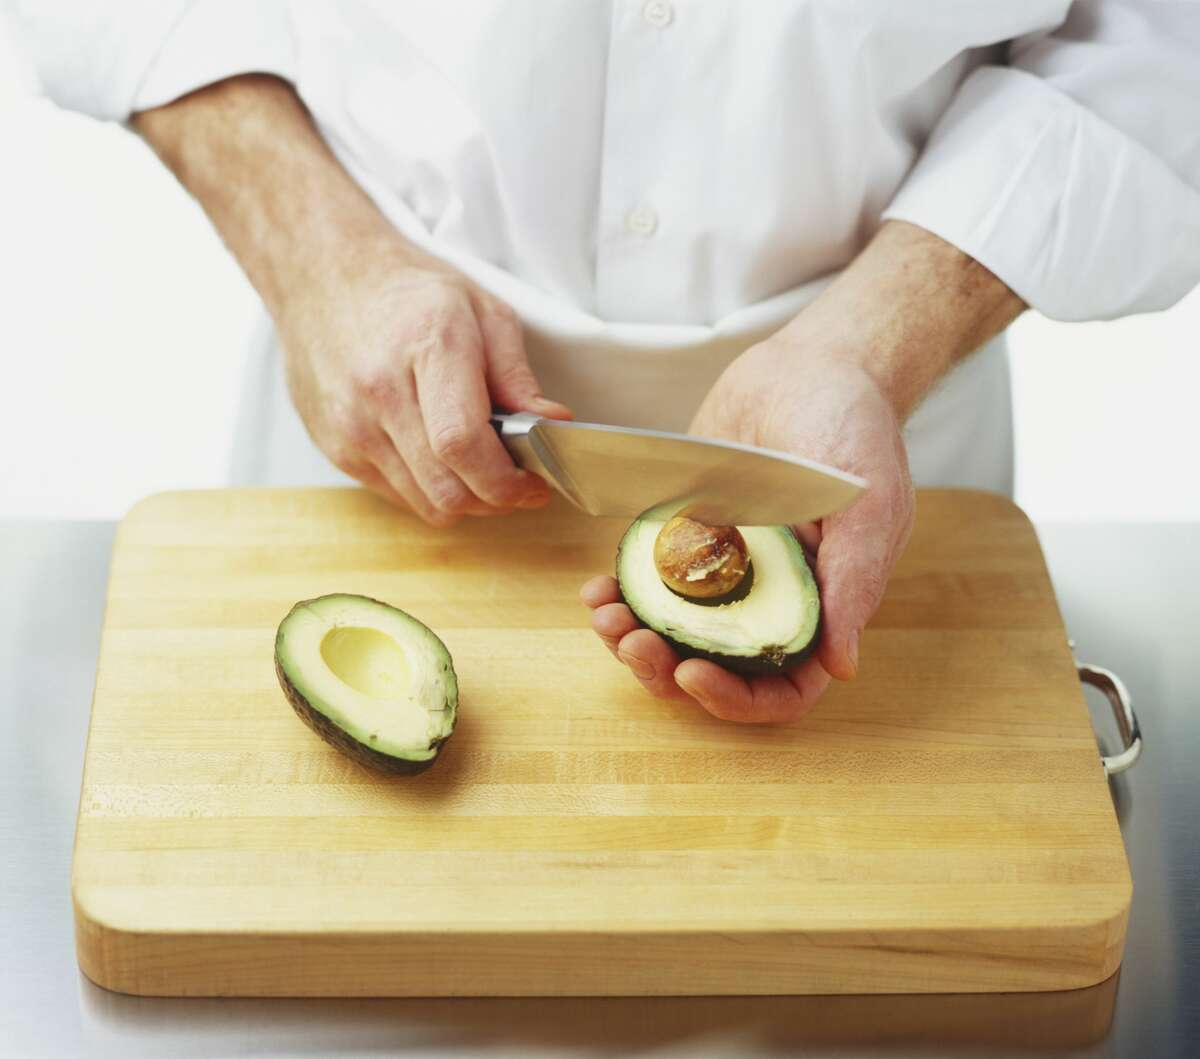 Cutting avocados is tricky business and leads to hand injuries each year.